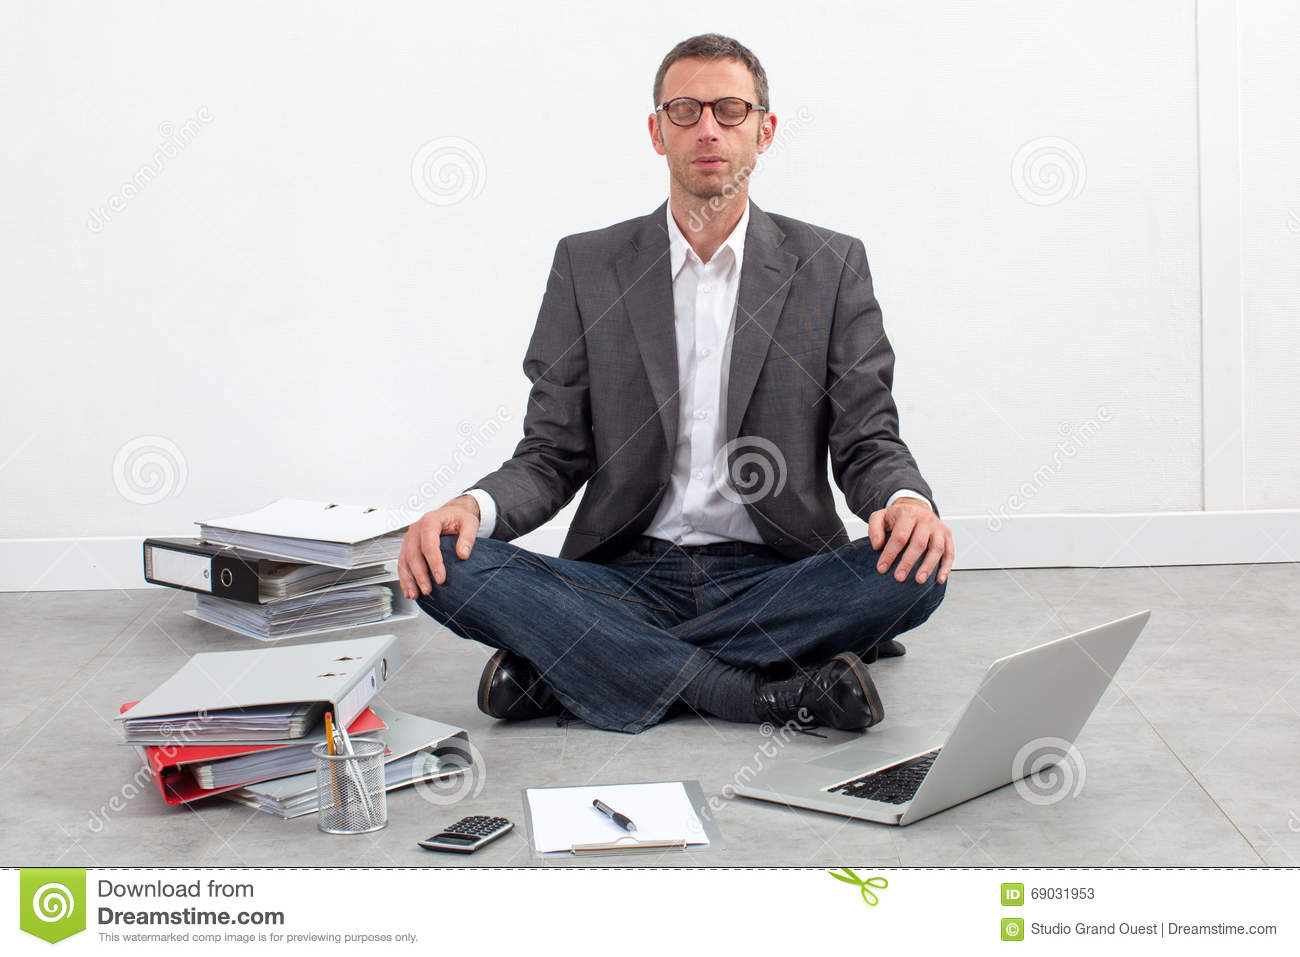 meditation businessman office. businessman meditating at office having break work stock photos meditation dreamstimecom